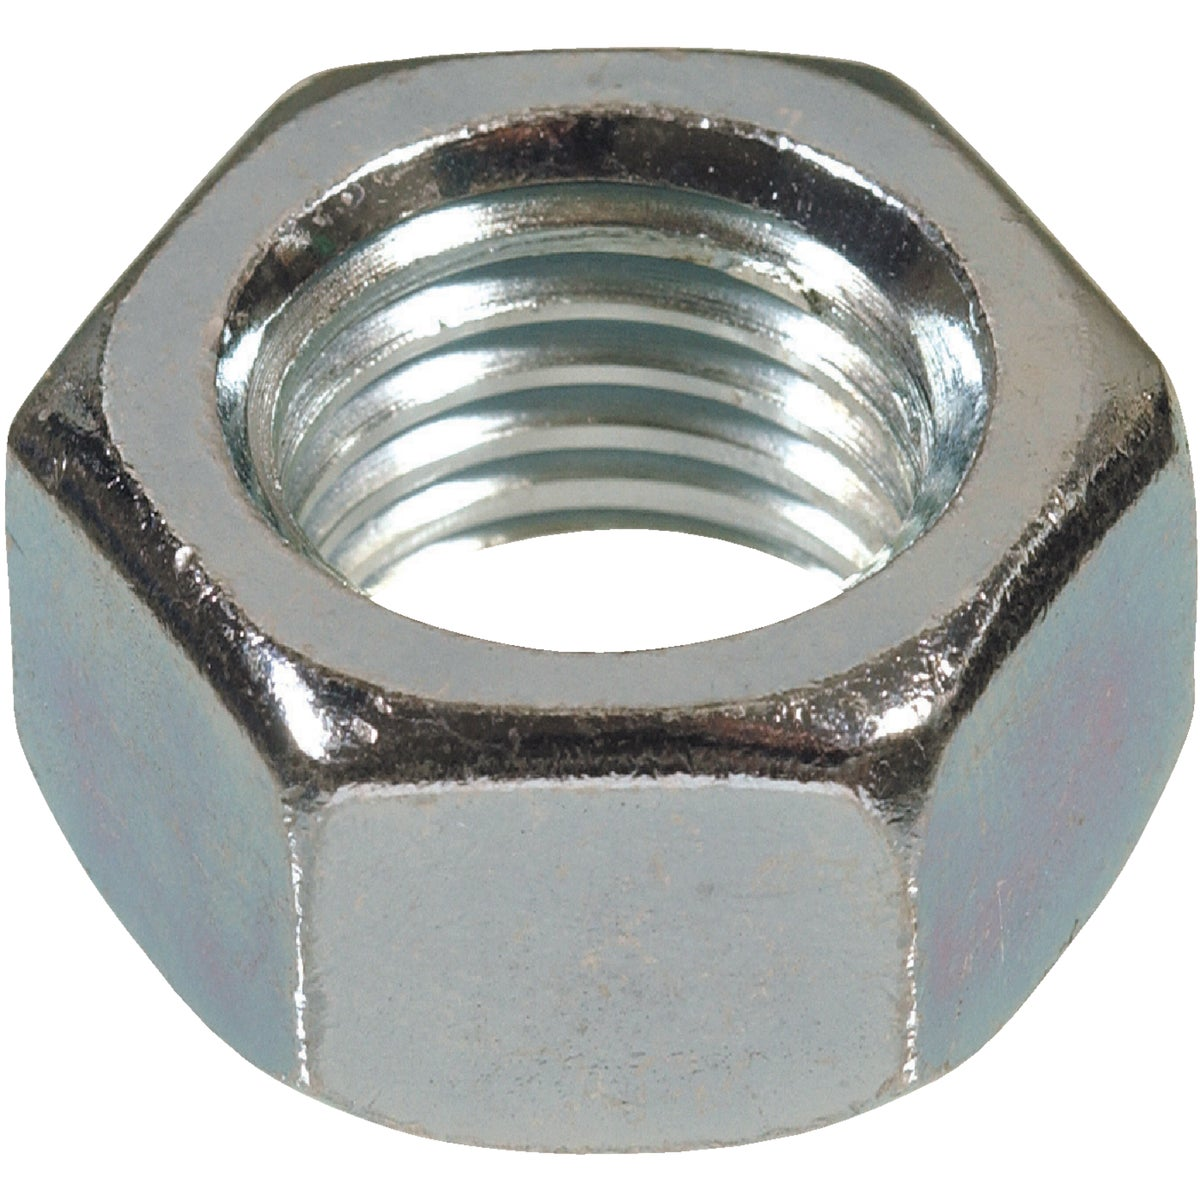 3/4-10 C THREAD HEX NUT - 150024 by Hillman Fastener